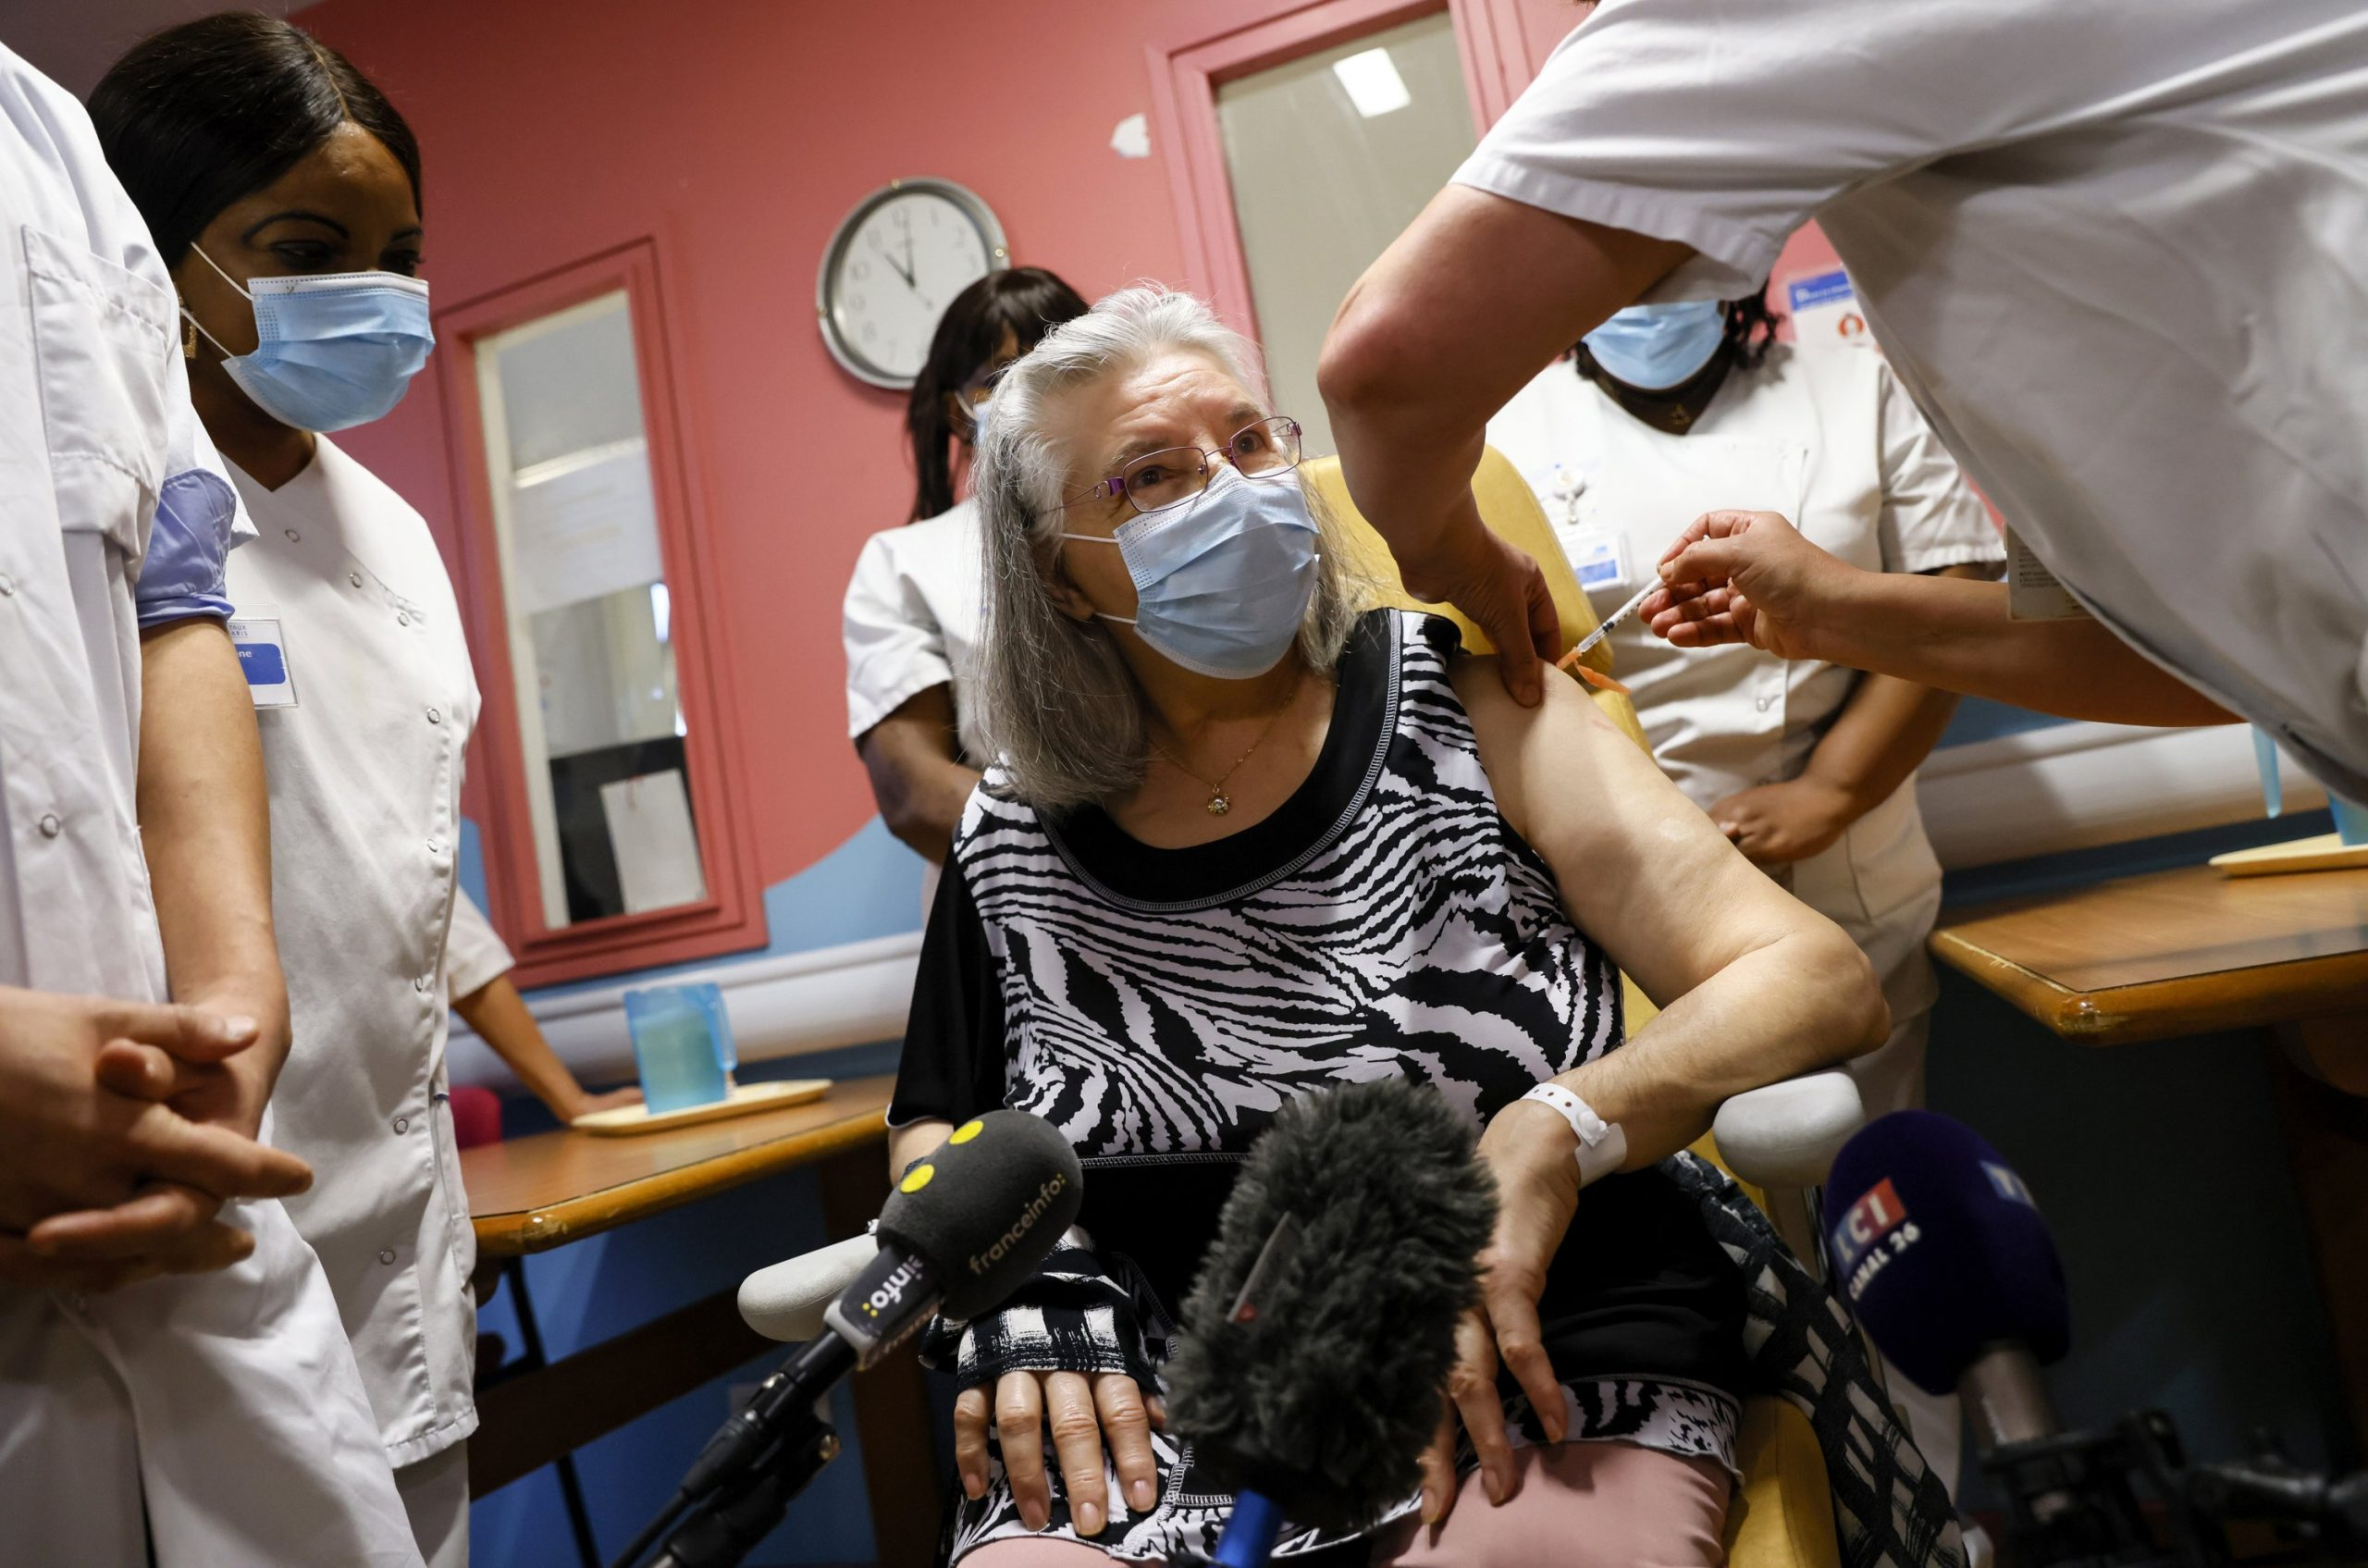 France's slow coronavirus vaccination strategy is counter-productive